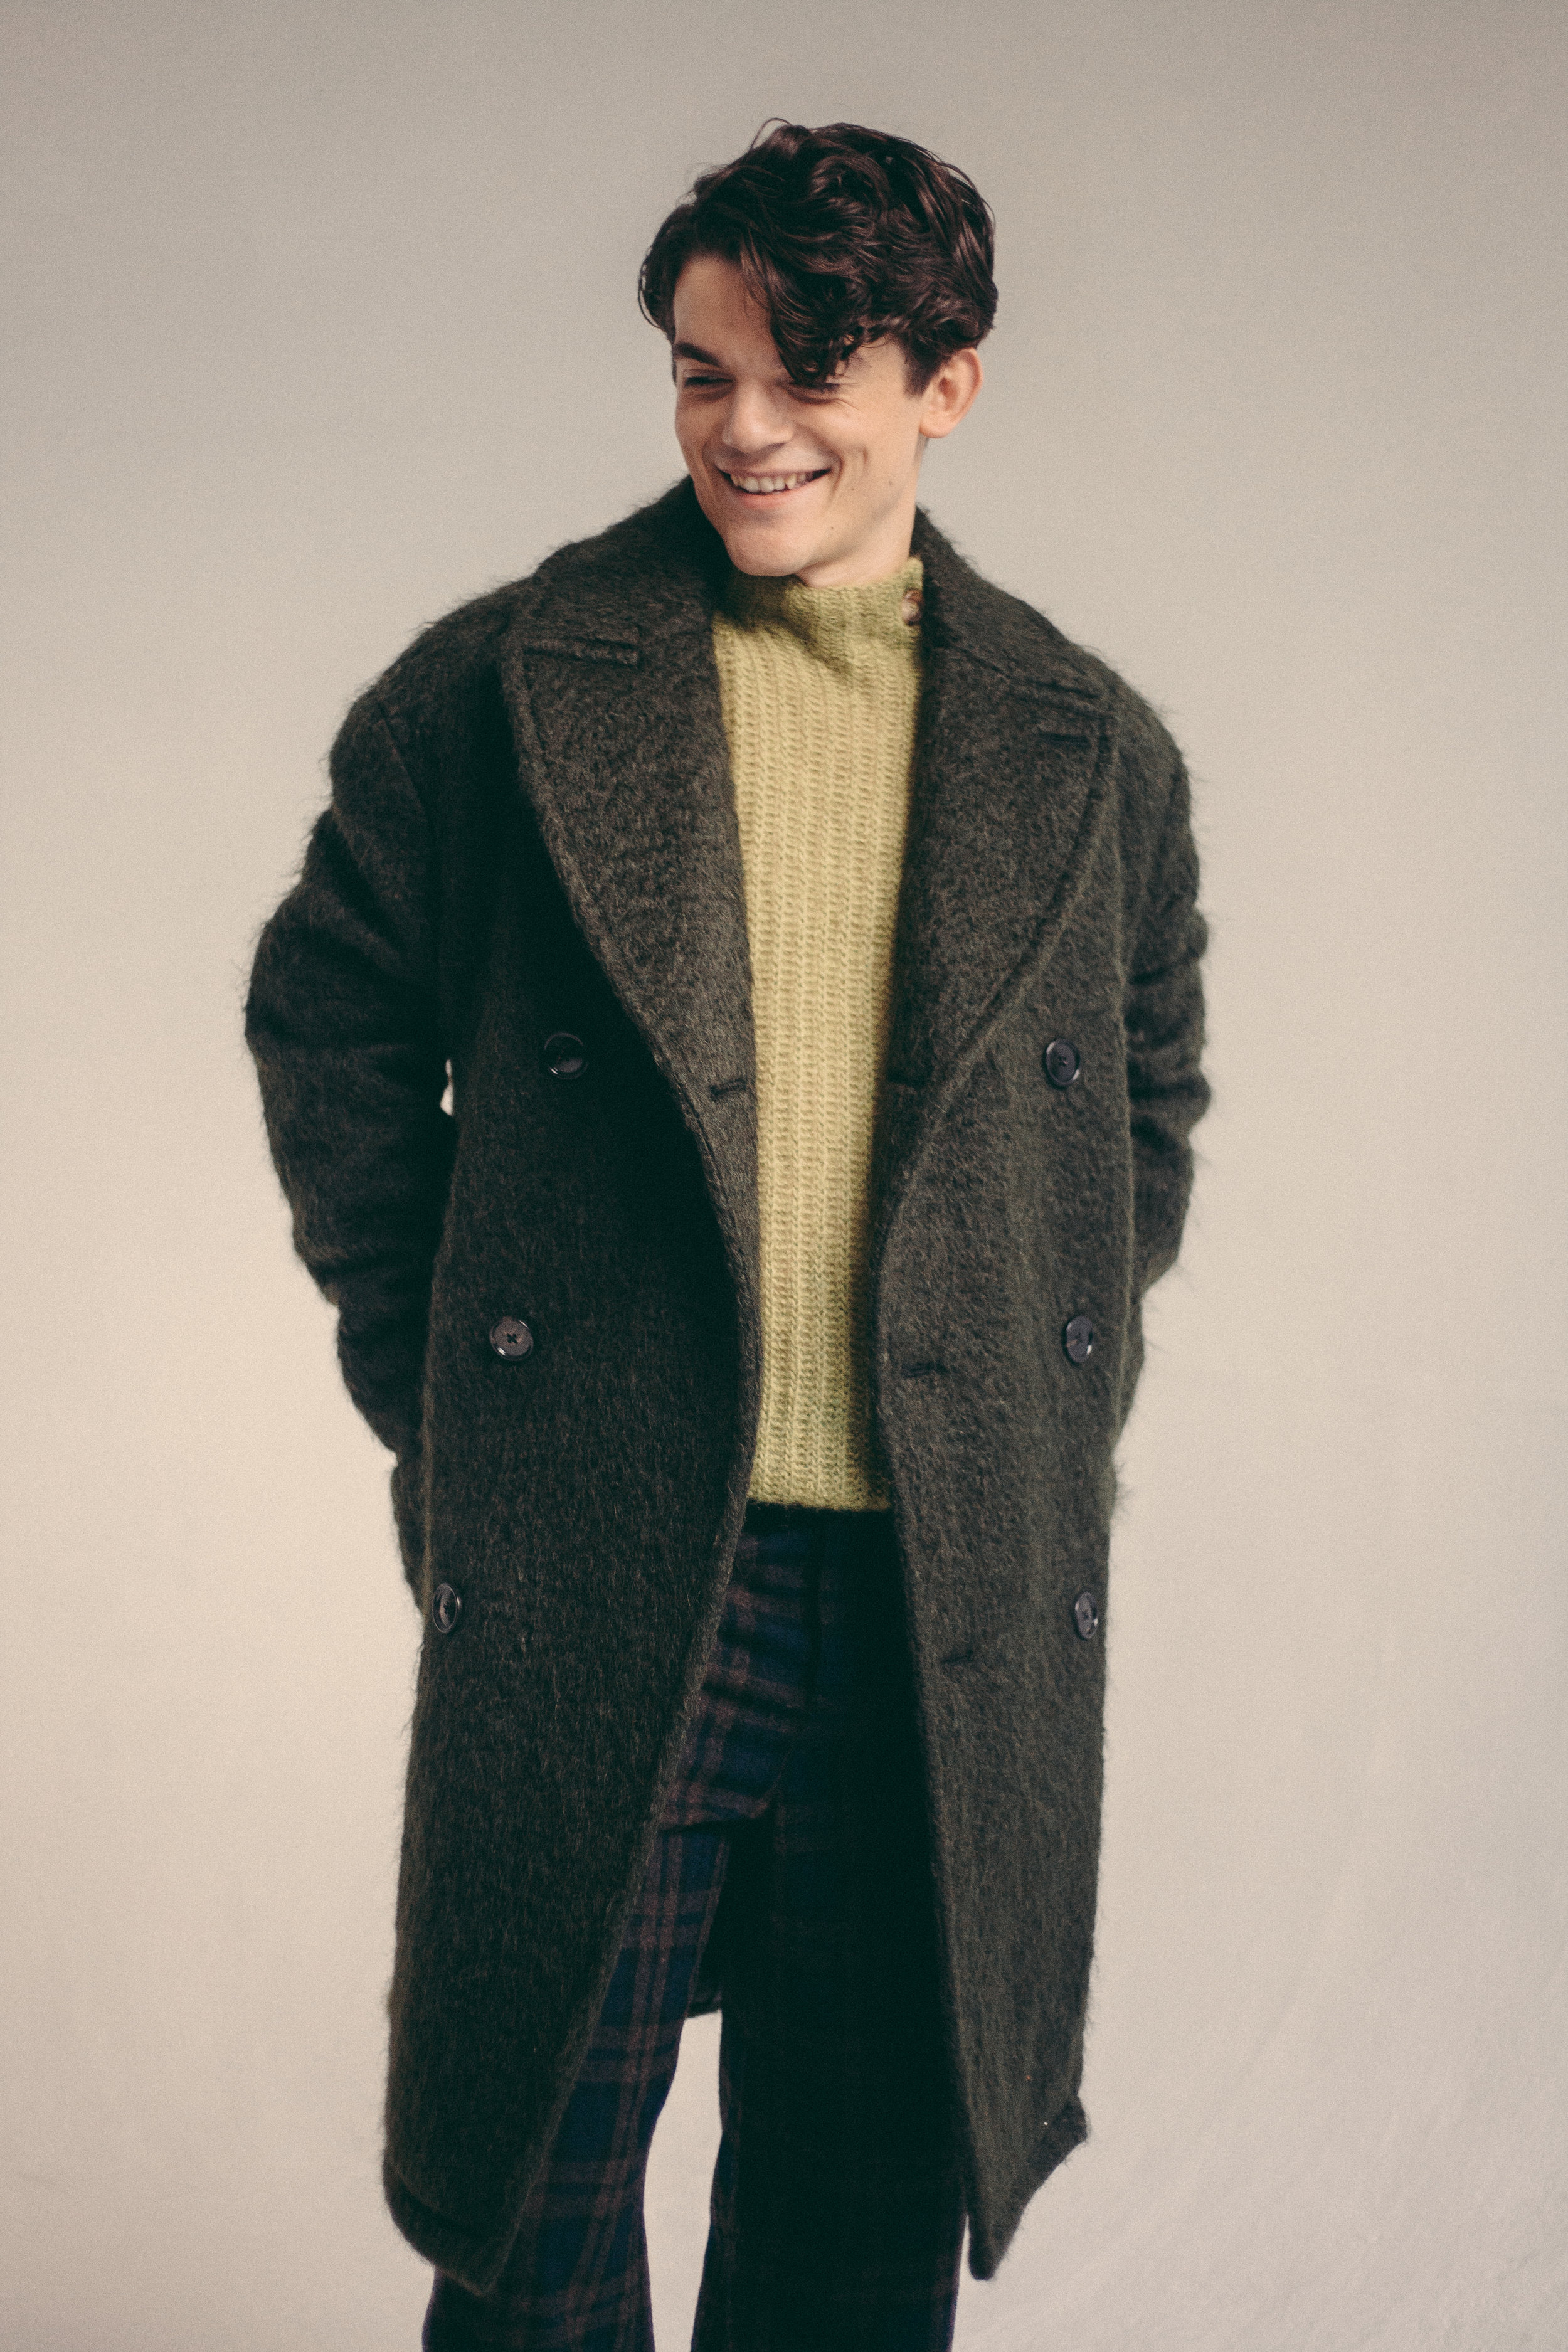 Trousers by   Loewe  , Jumper and Coat by   Hermès .